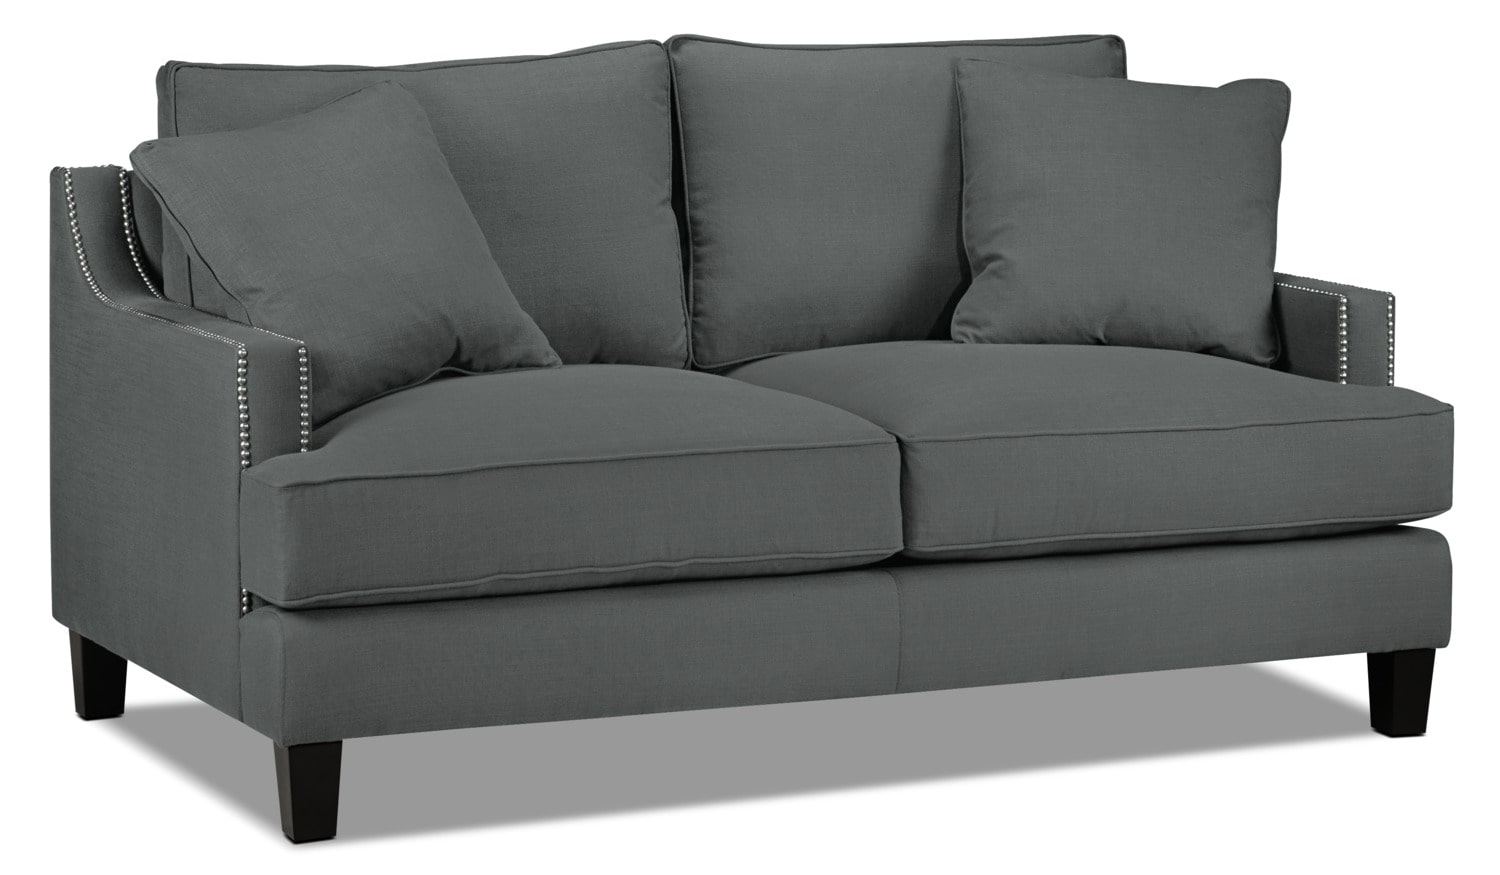 Living Room Furniture - Jules Loveseat - Charcoal